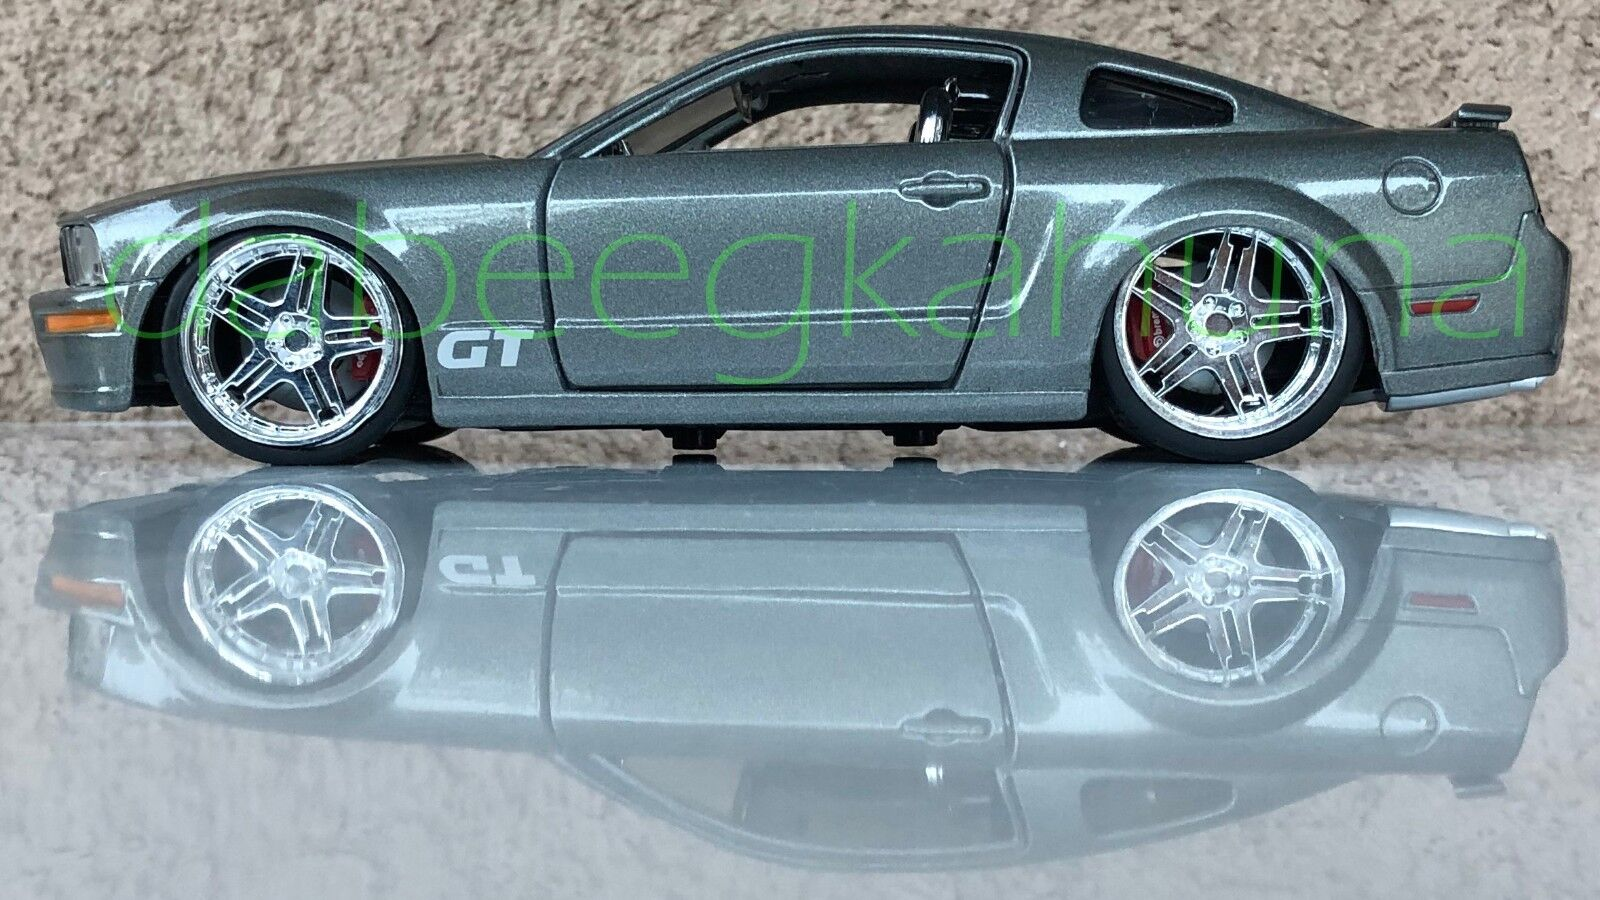 Maisto - Ford Mustang - Die-Cast - Rubber Tires - Scale 1 24 - Approx 8   L